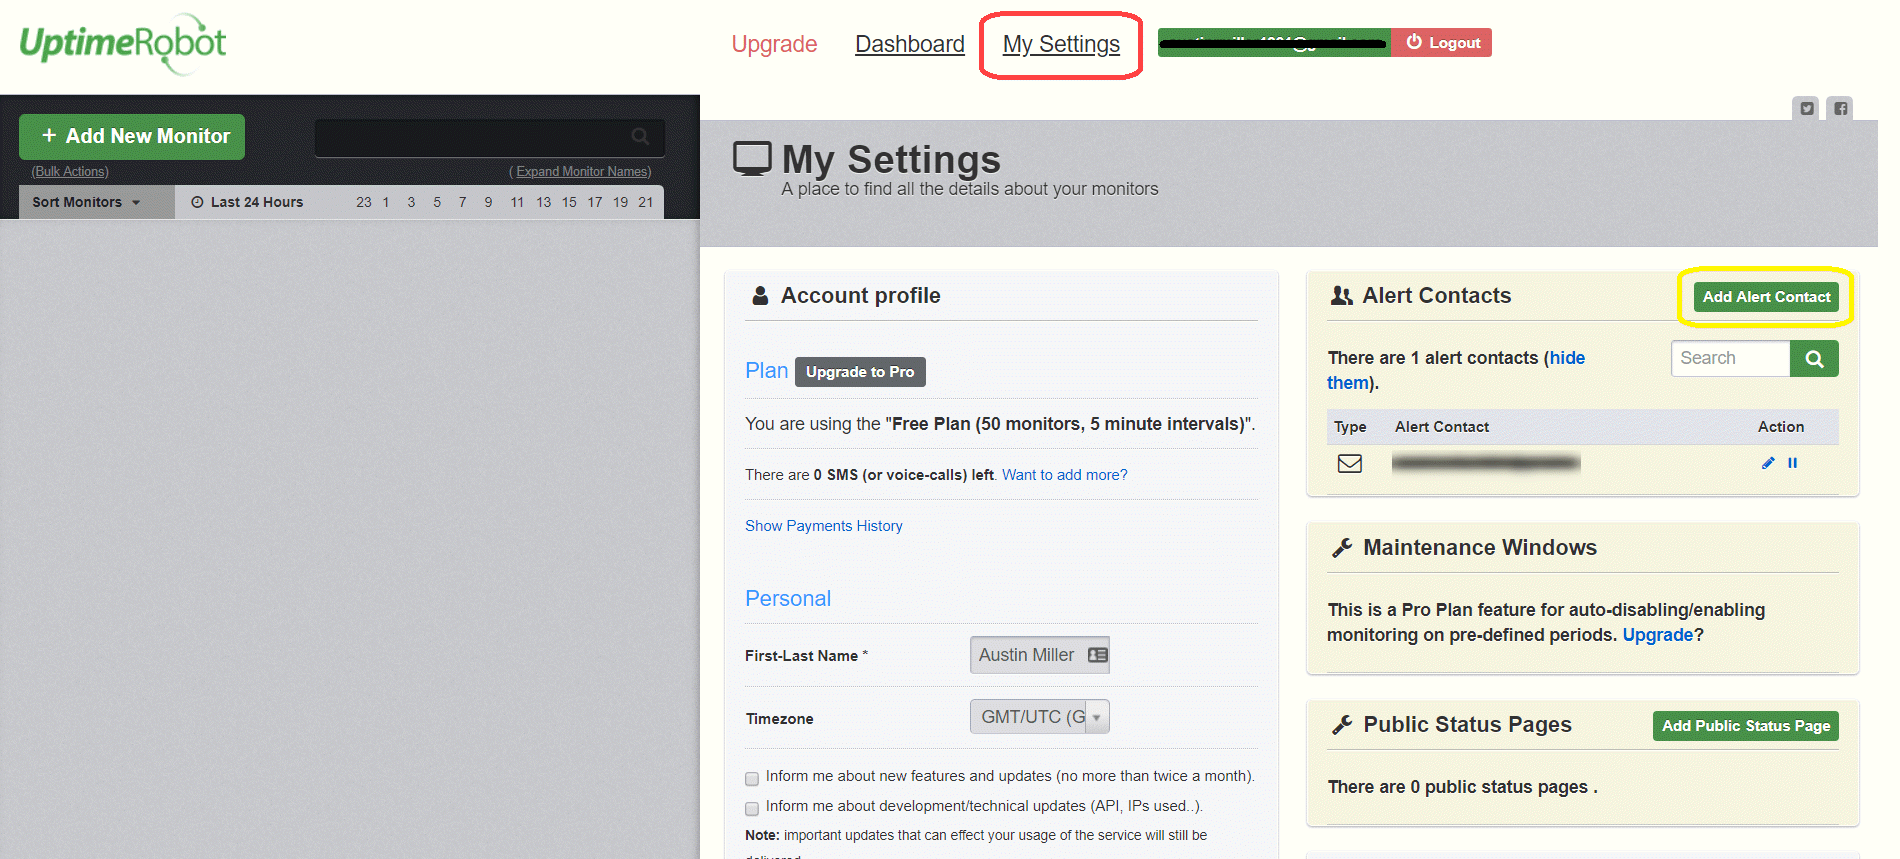 Click the Add Alert Contact Button